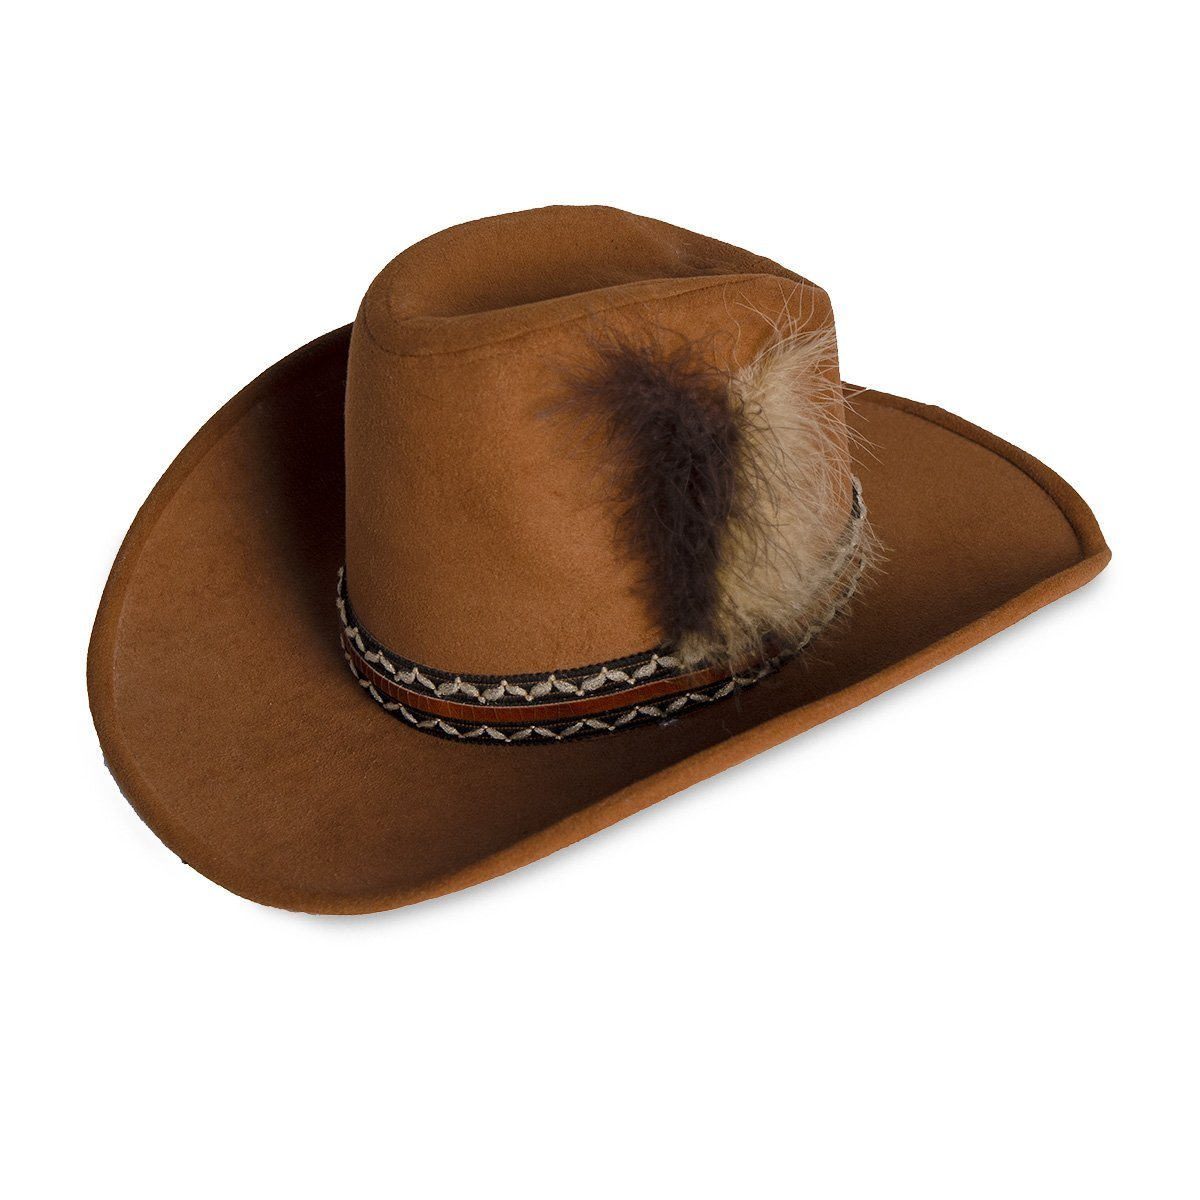 f7502916c Vintage Cowboy Hat, Dark Tan Wool Felt, Feathers